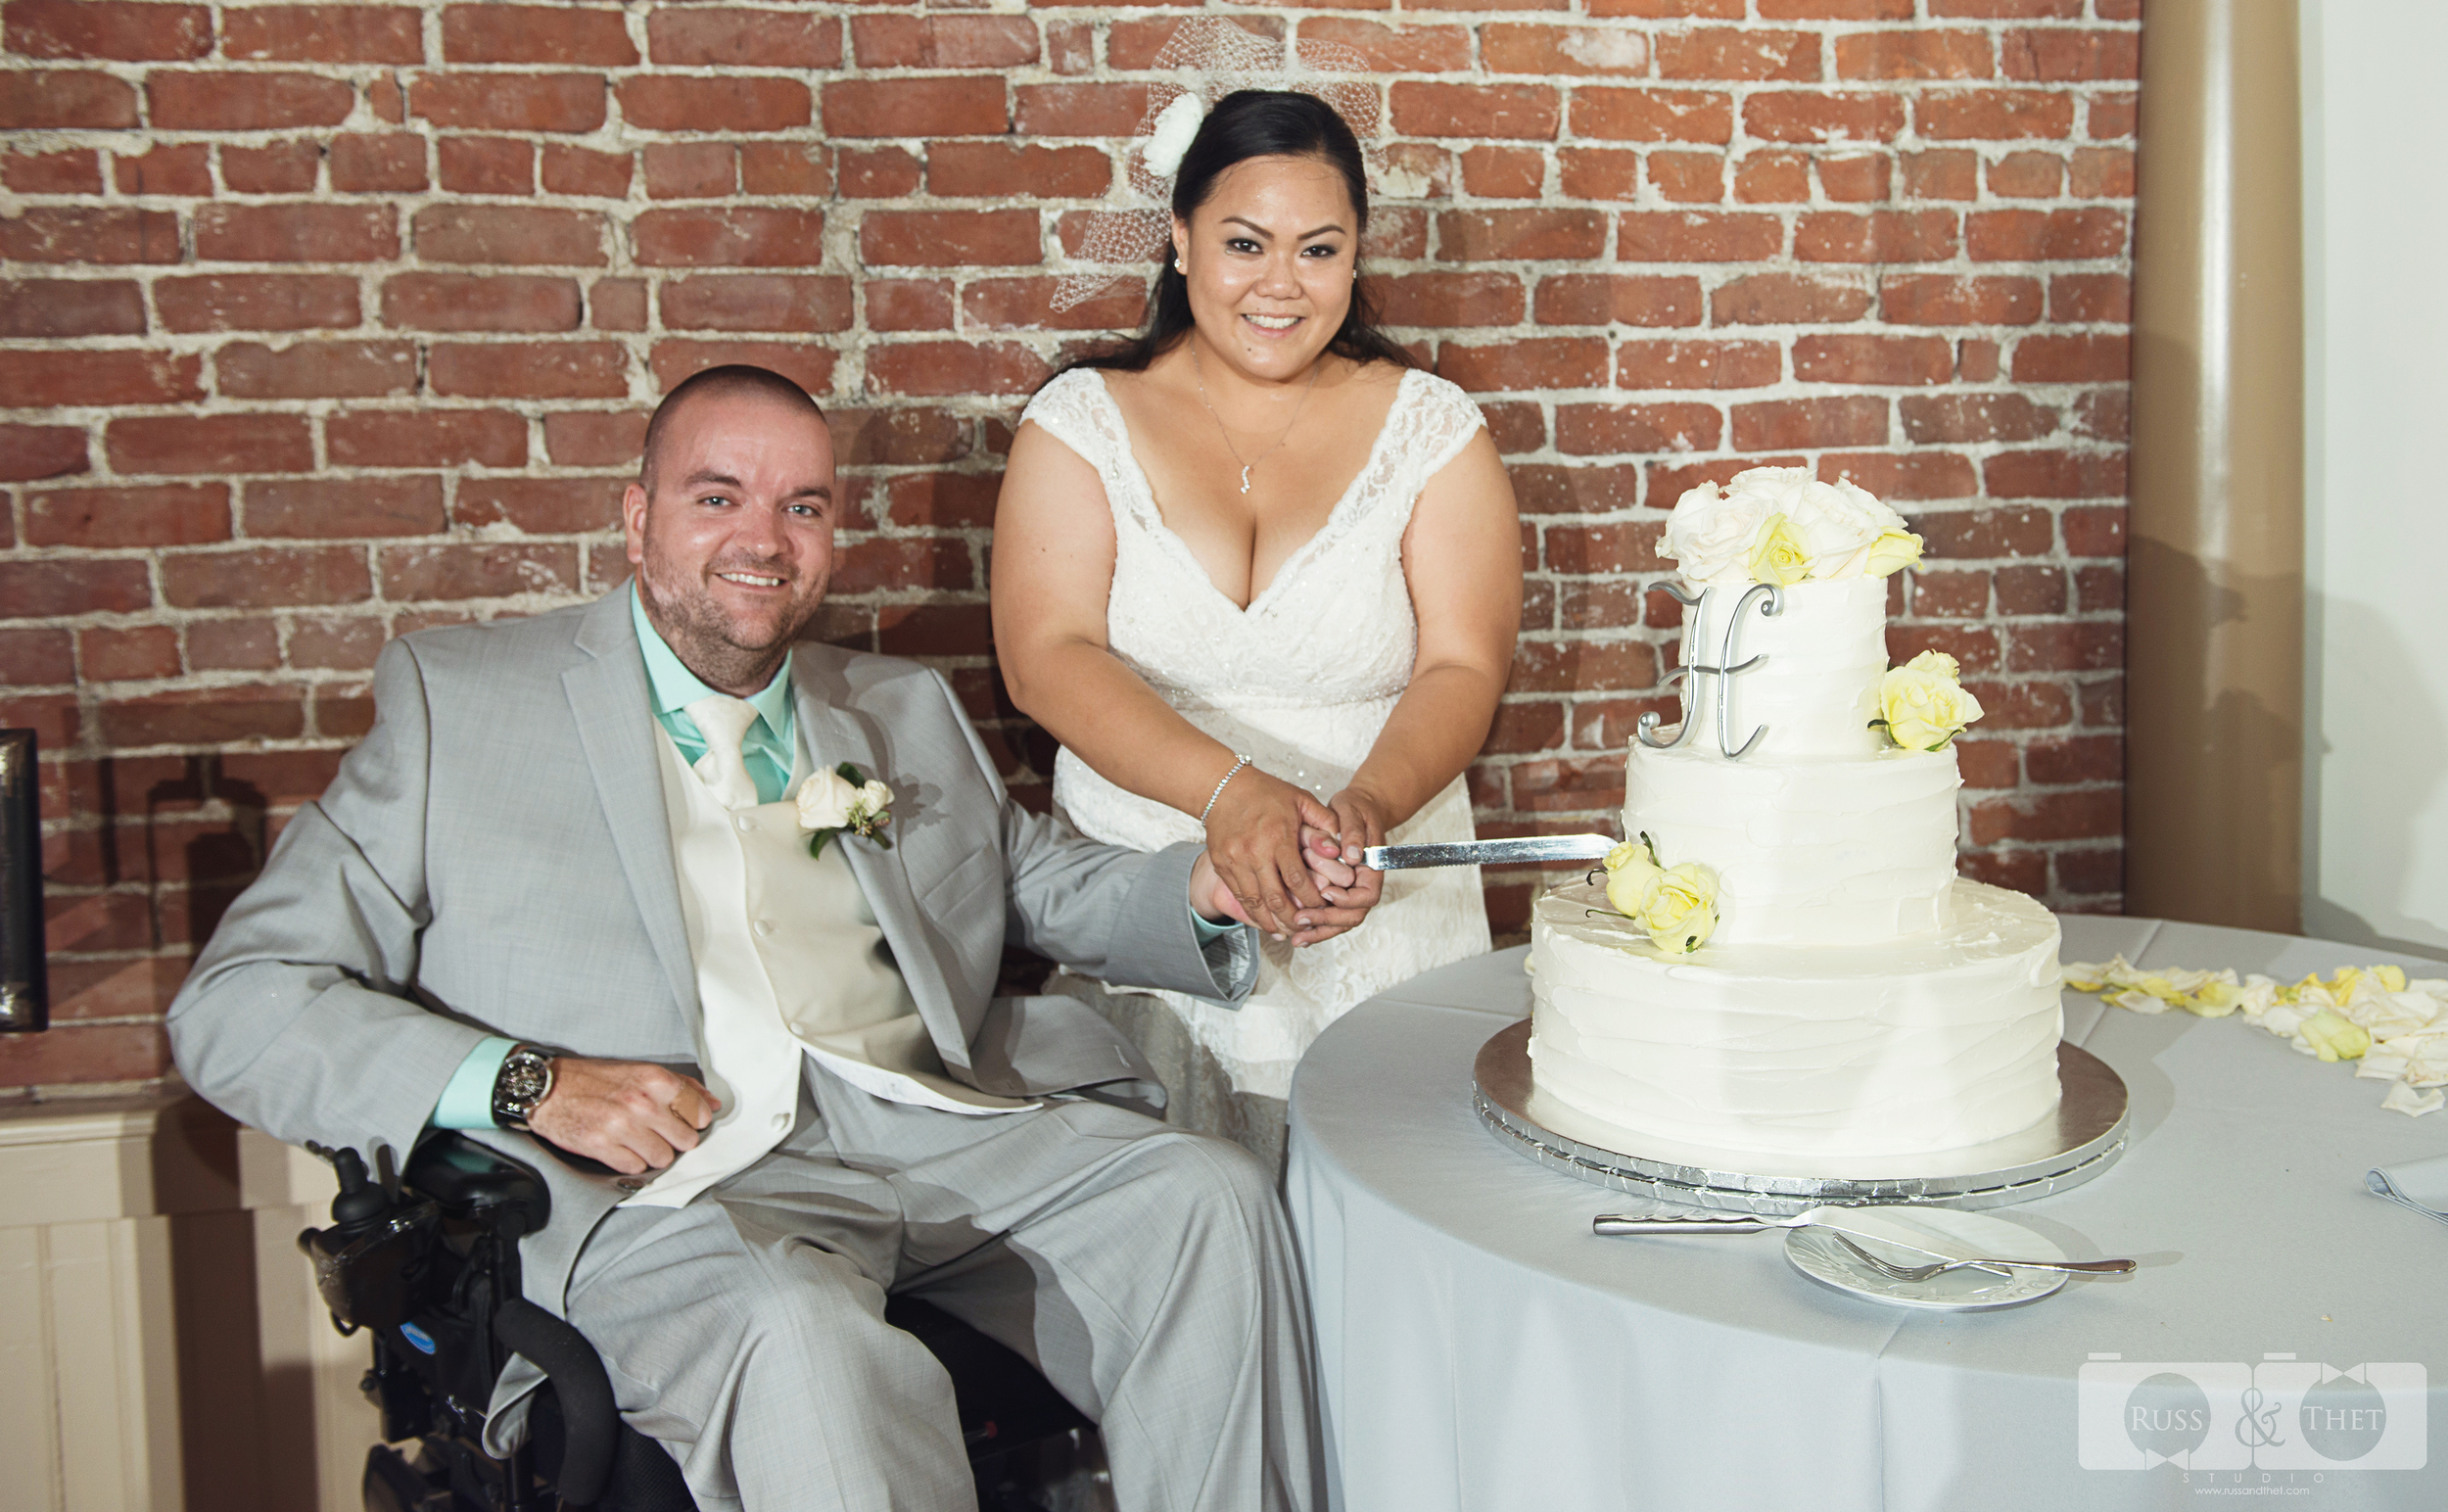 long-beach-wedding-photographer_5.jpg